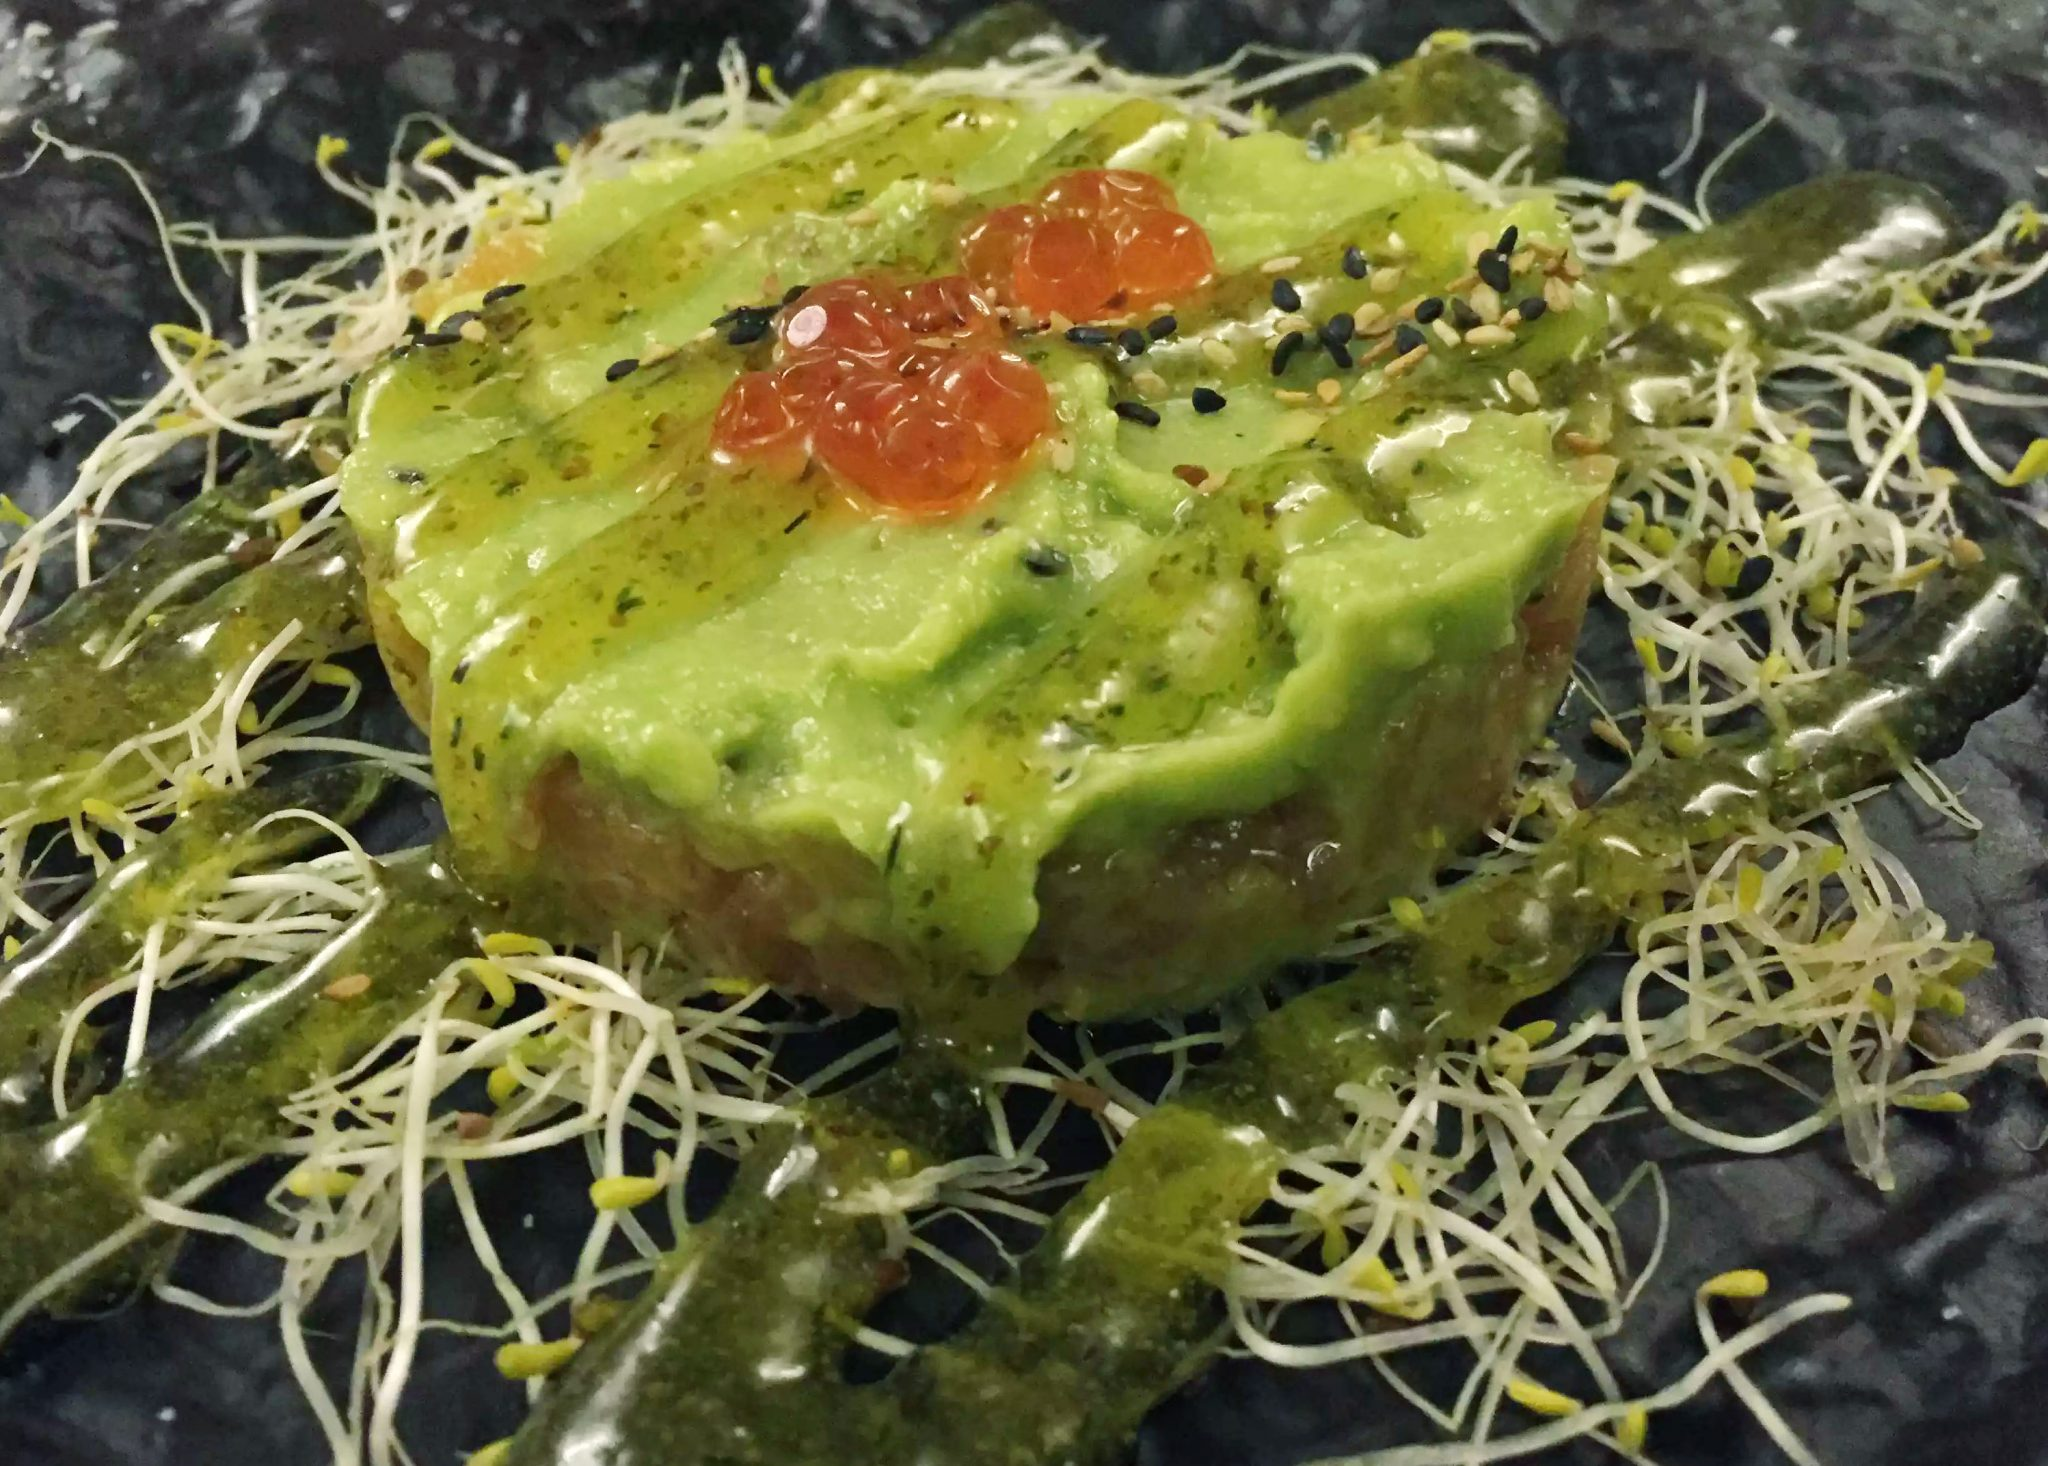 Enoteca MF Cadaques by Emma Eats & Explores - Restaurant Review - Tapas - Catalonia - Spain - Salmon Tartare with Guacamole